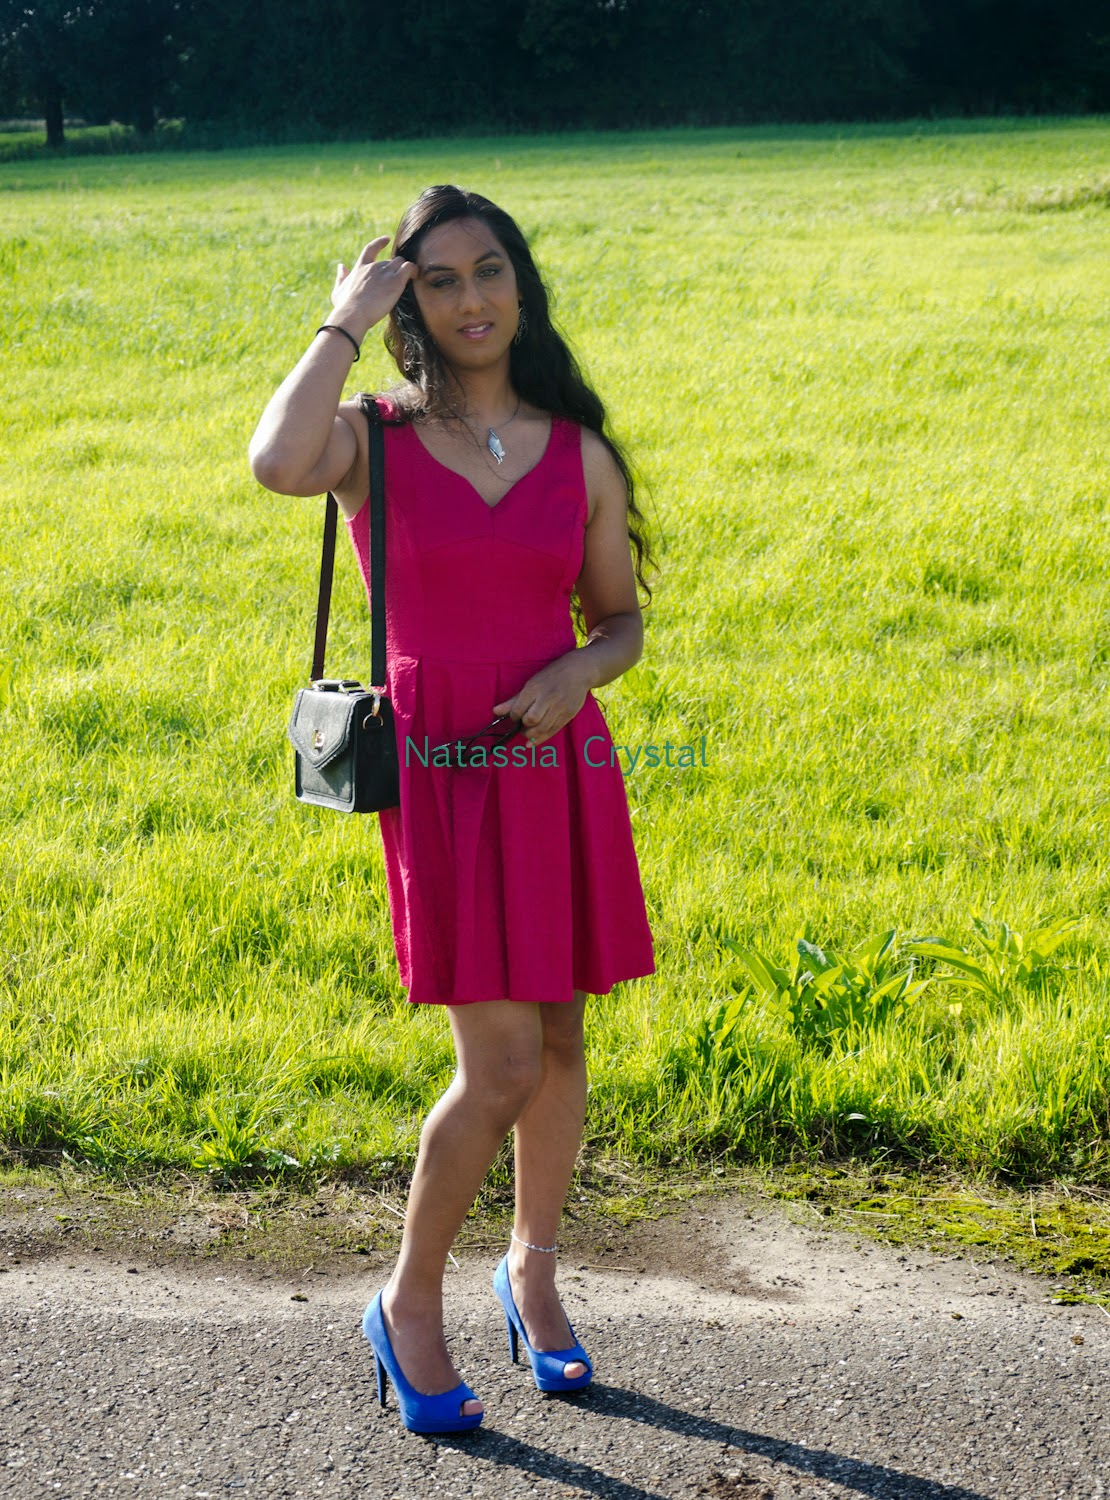 Natassia pink dress blue heels posing grass field